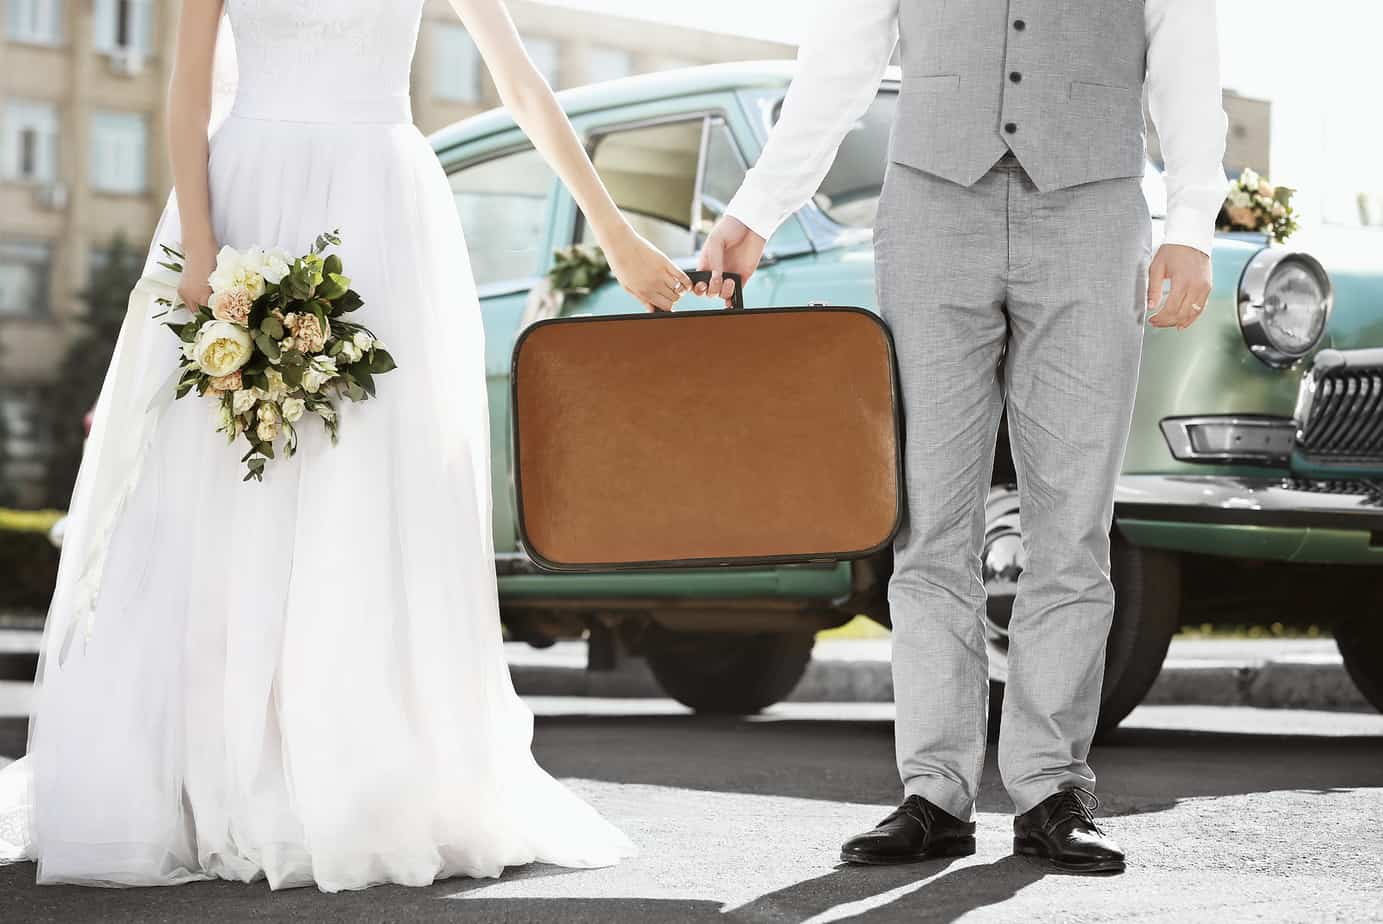 how to plan a travel themed wedding - Happy wedding couple with suitcase and car outdoors